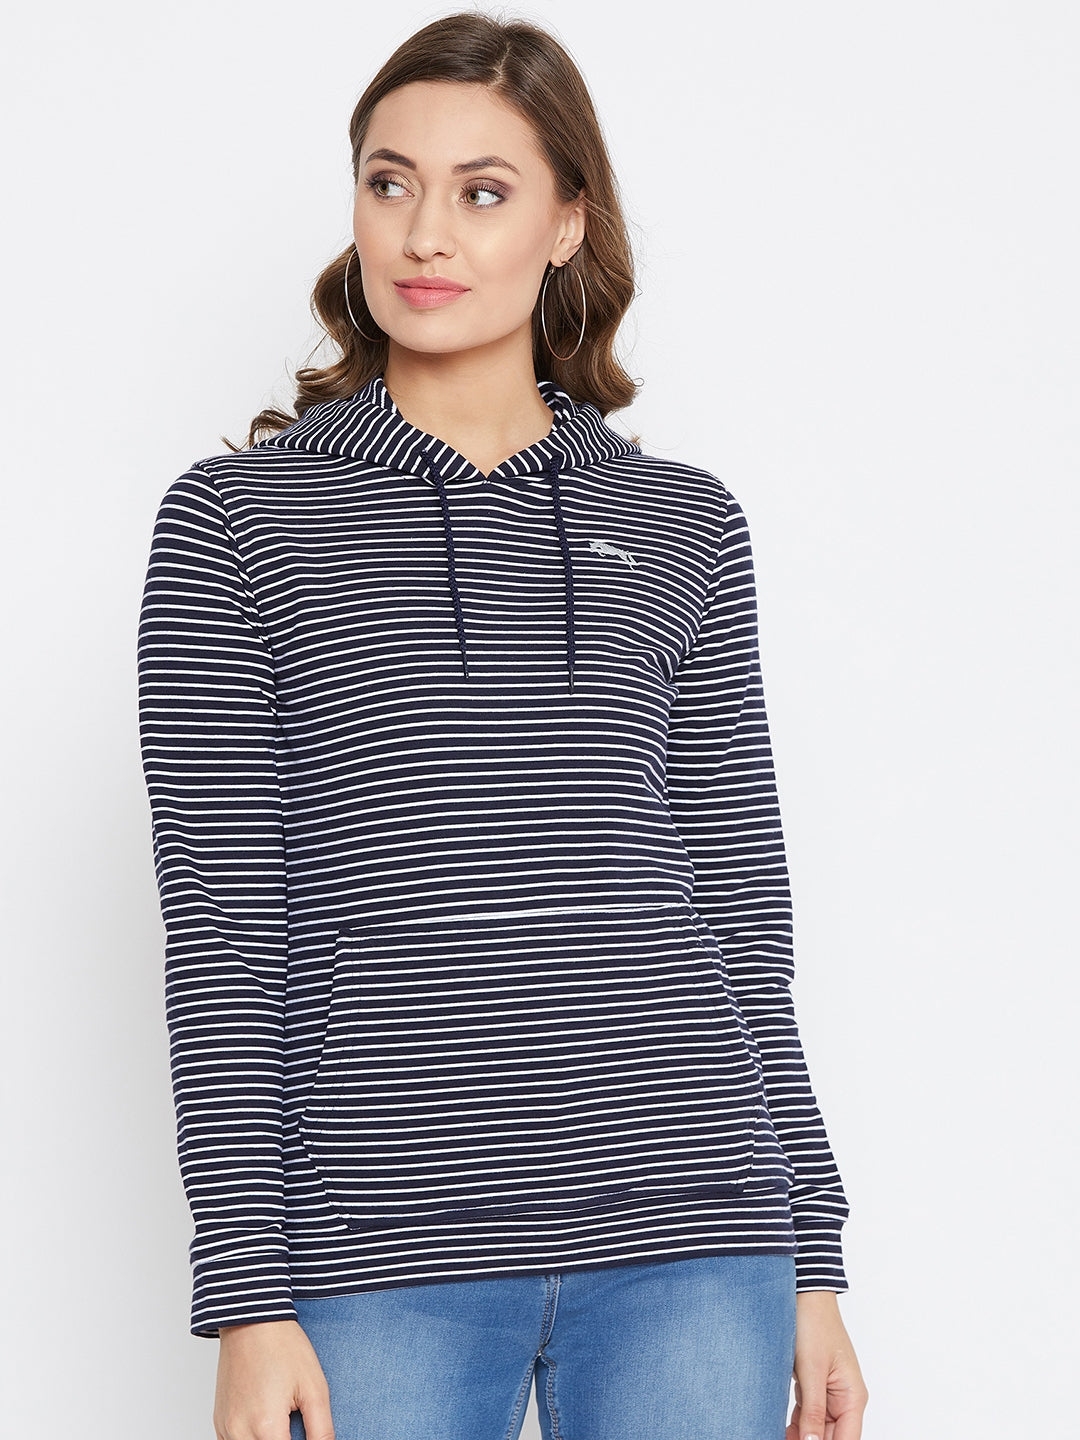 JUMP USA Women Navu Blue And White Striped Hoodies Sweatshits - JUMP USA